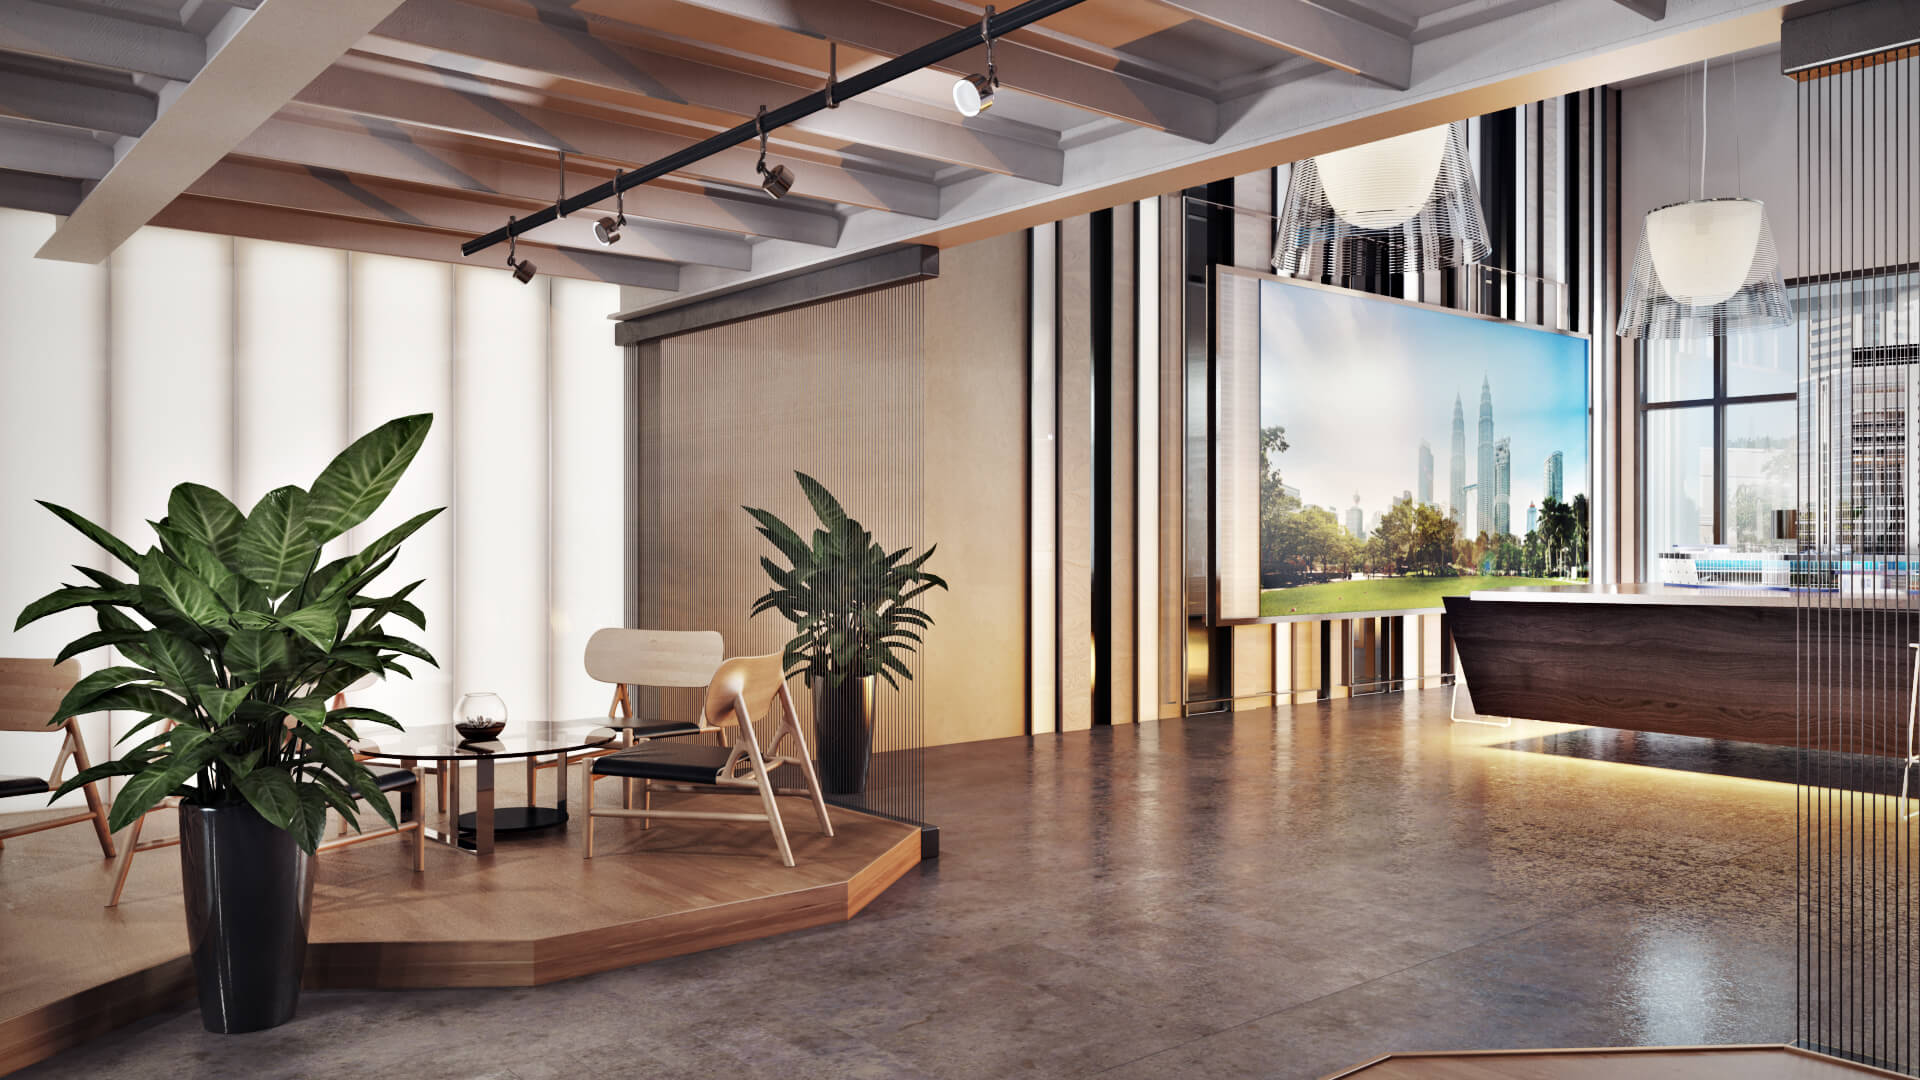 Office Interior CG Render for Commercial Design Project View05